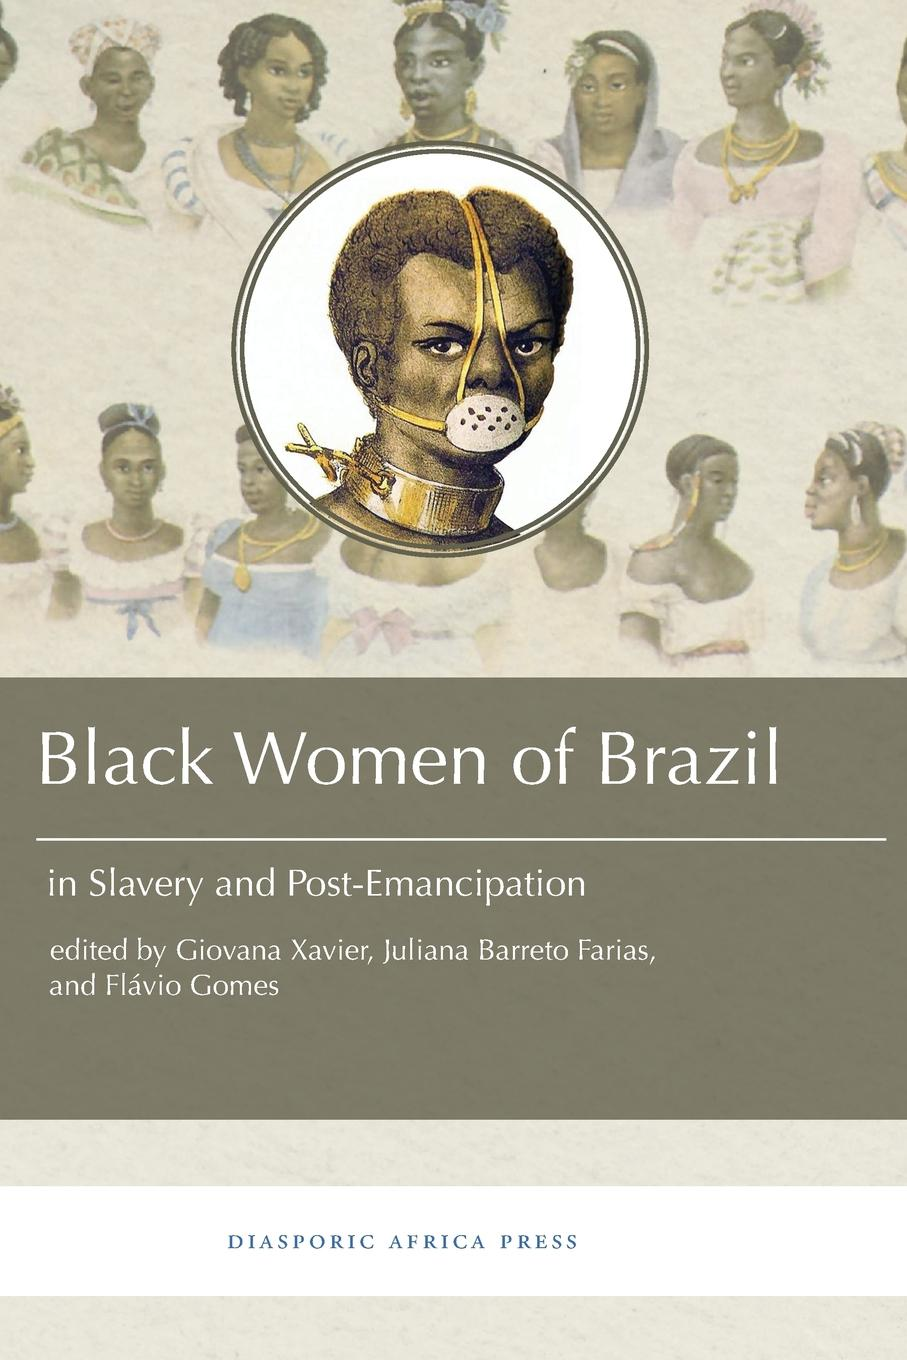 Black Women in Brazil in Slavery and Post-Emancipation charles edmond akers the rubber industry in brazil and the orient